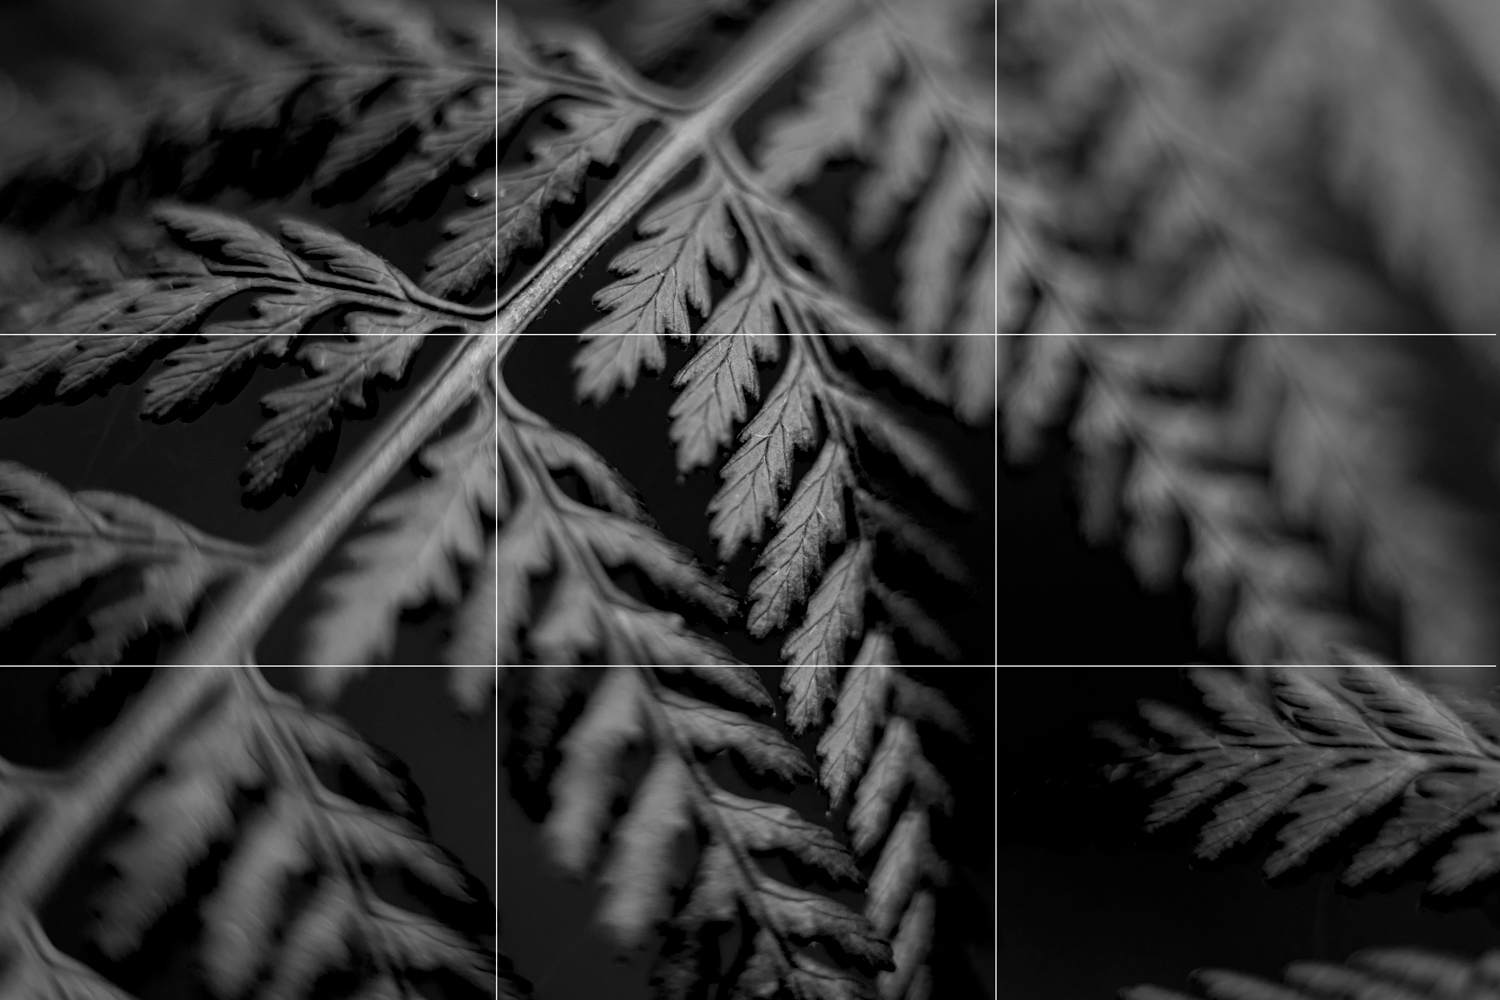 Rule of thirds examples - a macro photograph of a fern in black and white